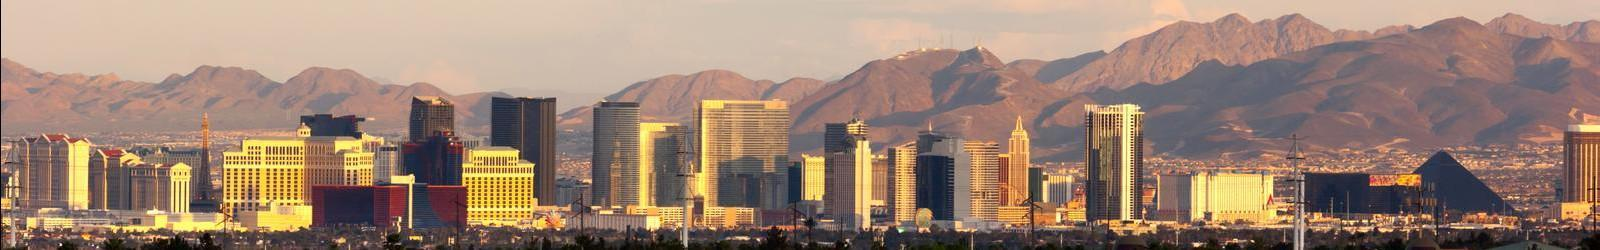 Addictions or Substance Abuse therapists in Las Vegas, Nevada